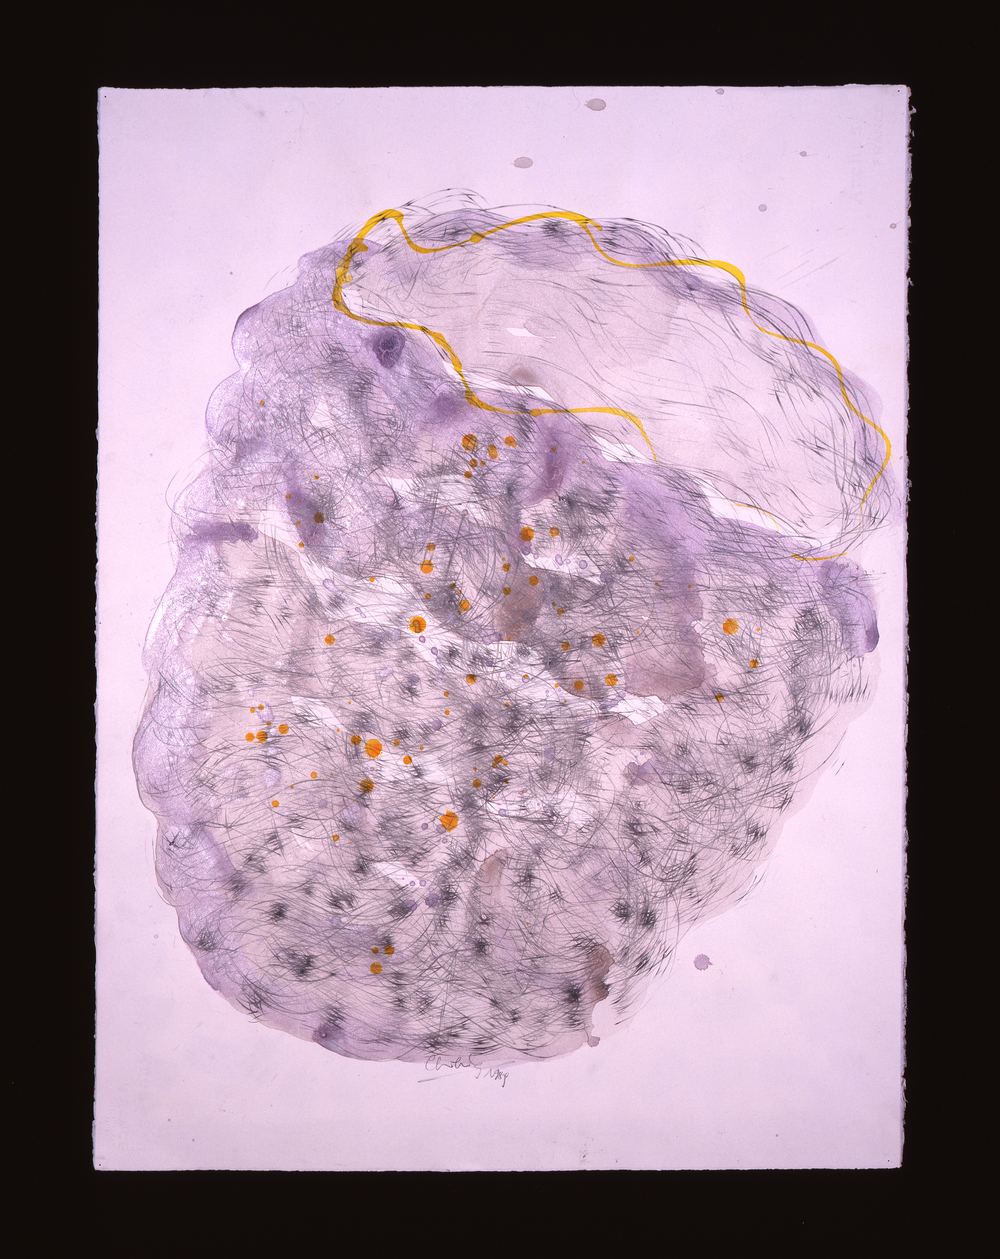 Dale Chihuly,  Basket Drawing,  (1984, watercolor, graphite, ink and colored pencil on paper, 30 x 22 inches), DC.367